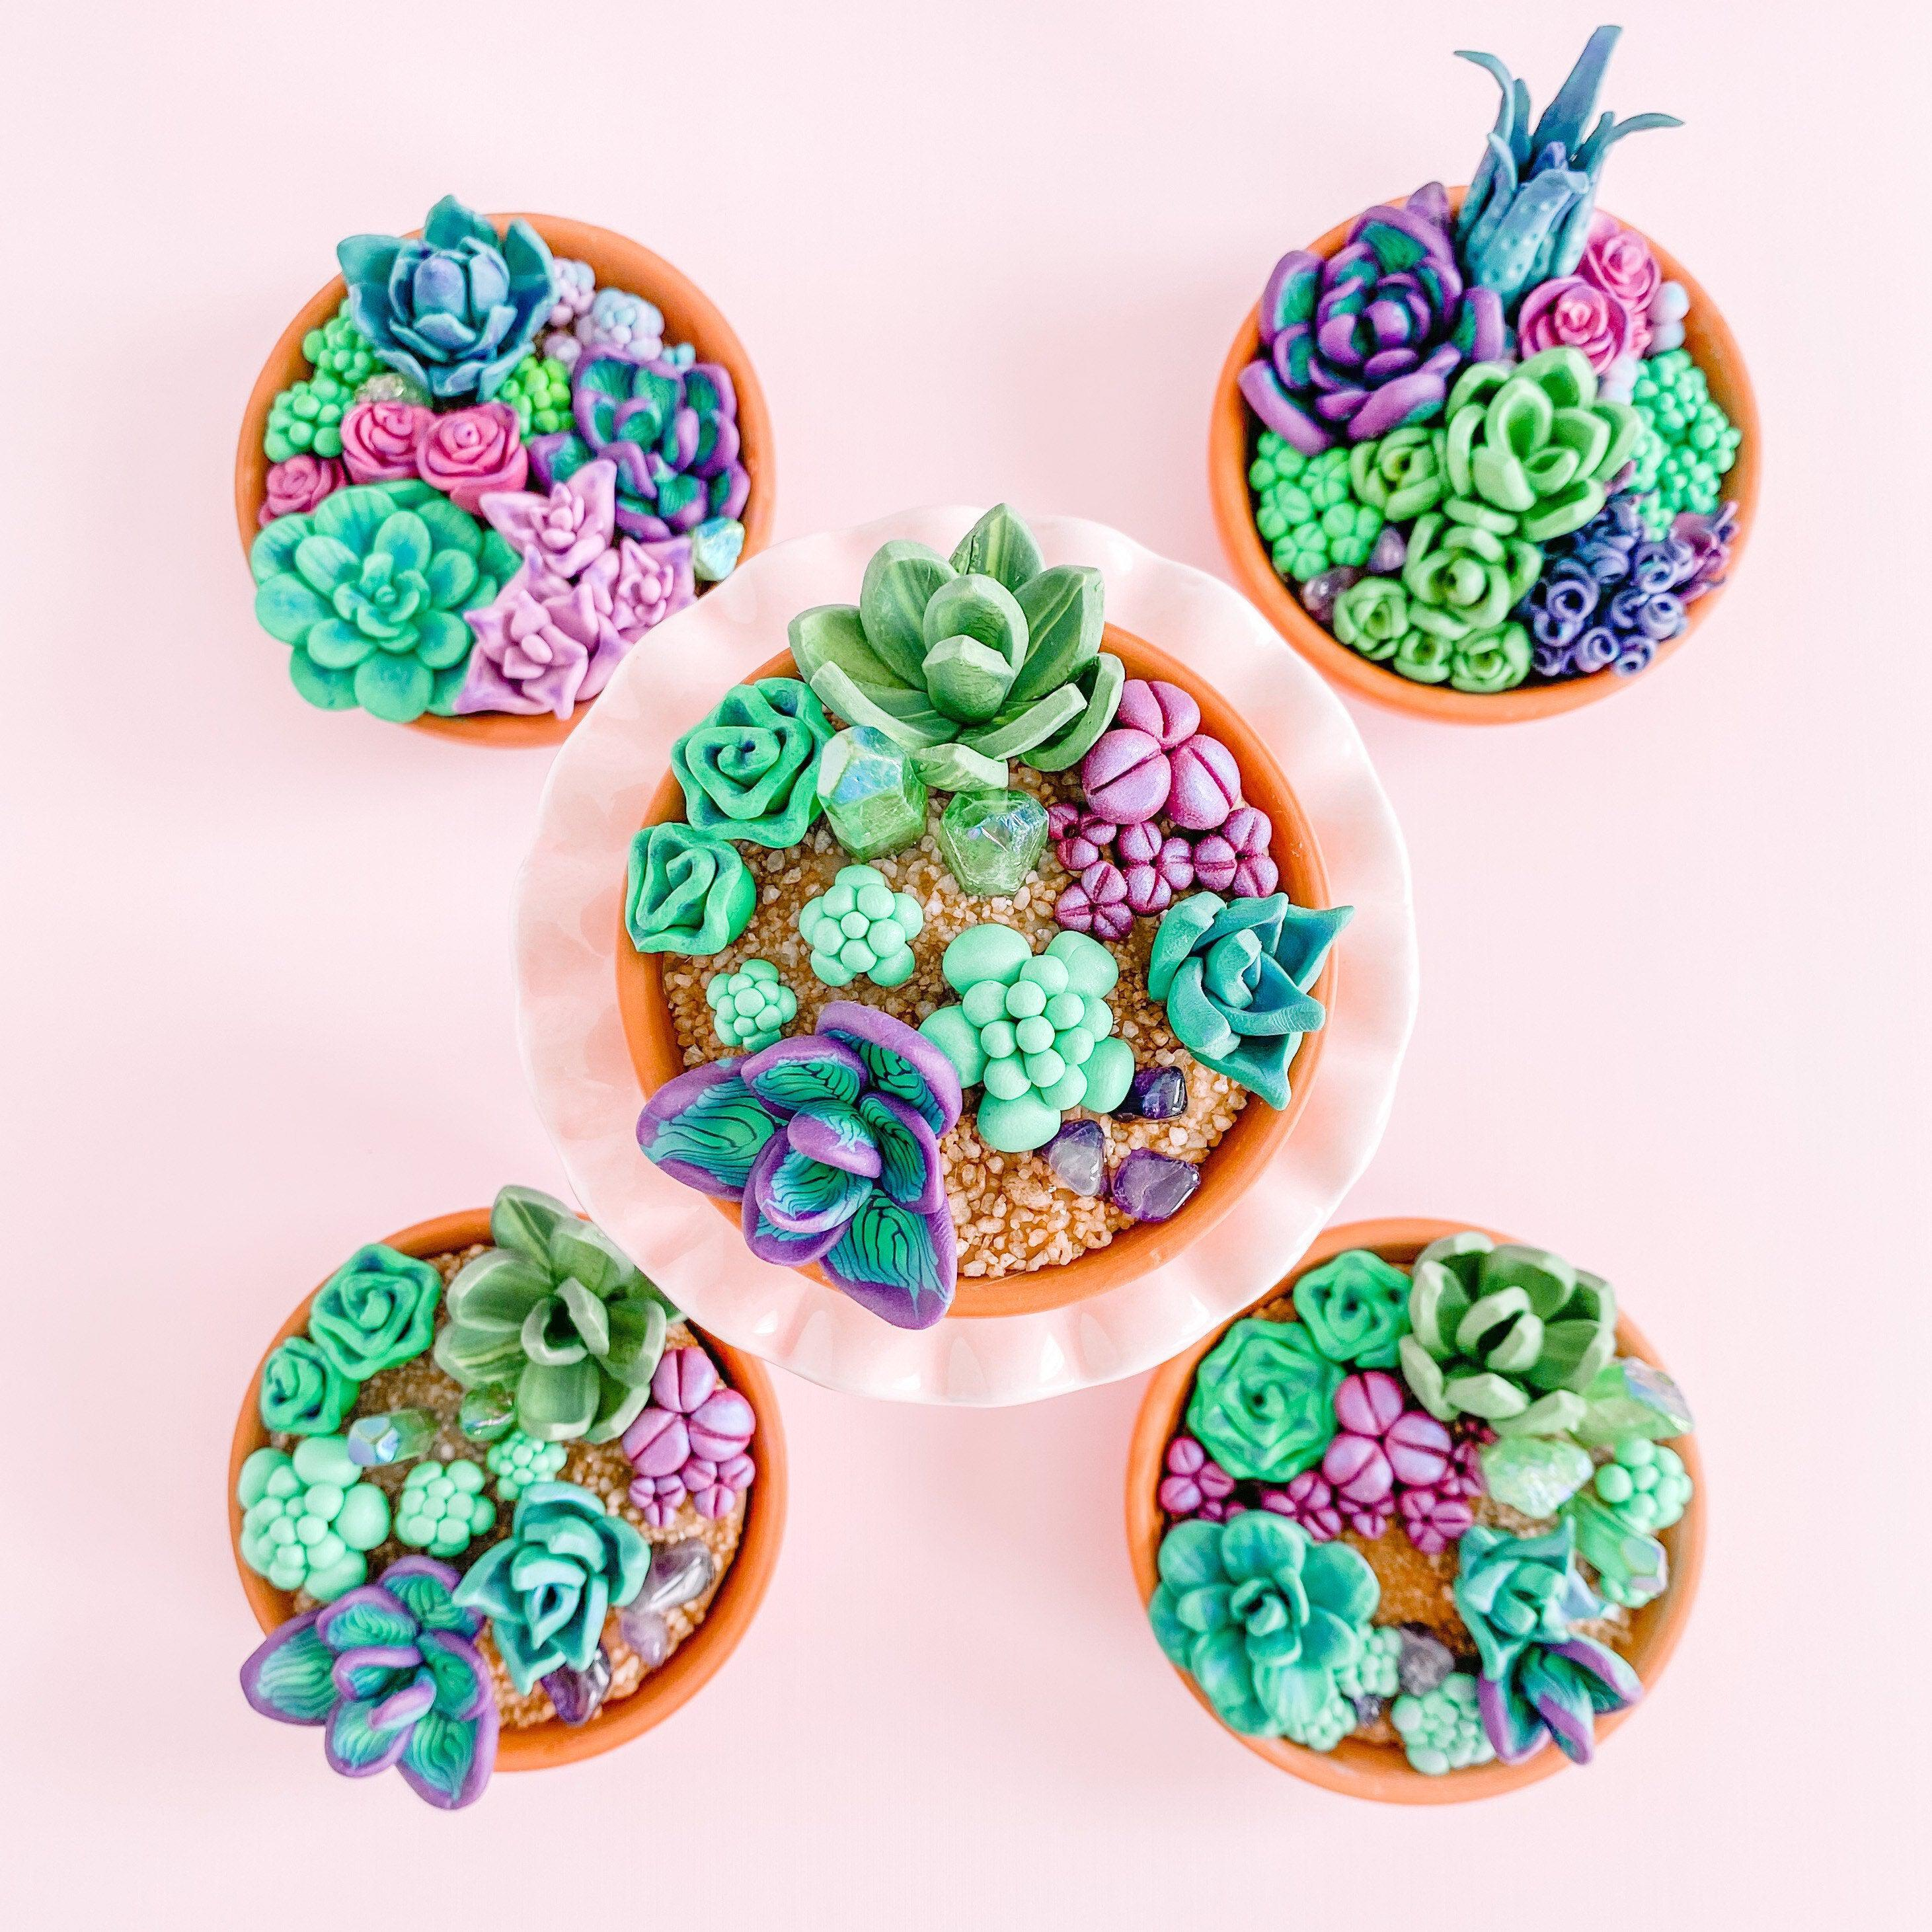 fireflyFrippery Miniature Faux Succulent and Crystal Gardens